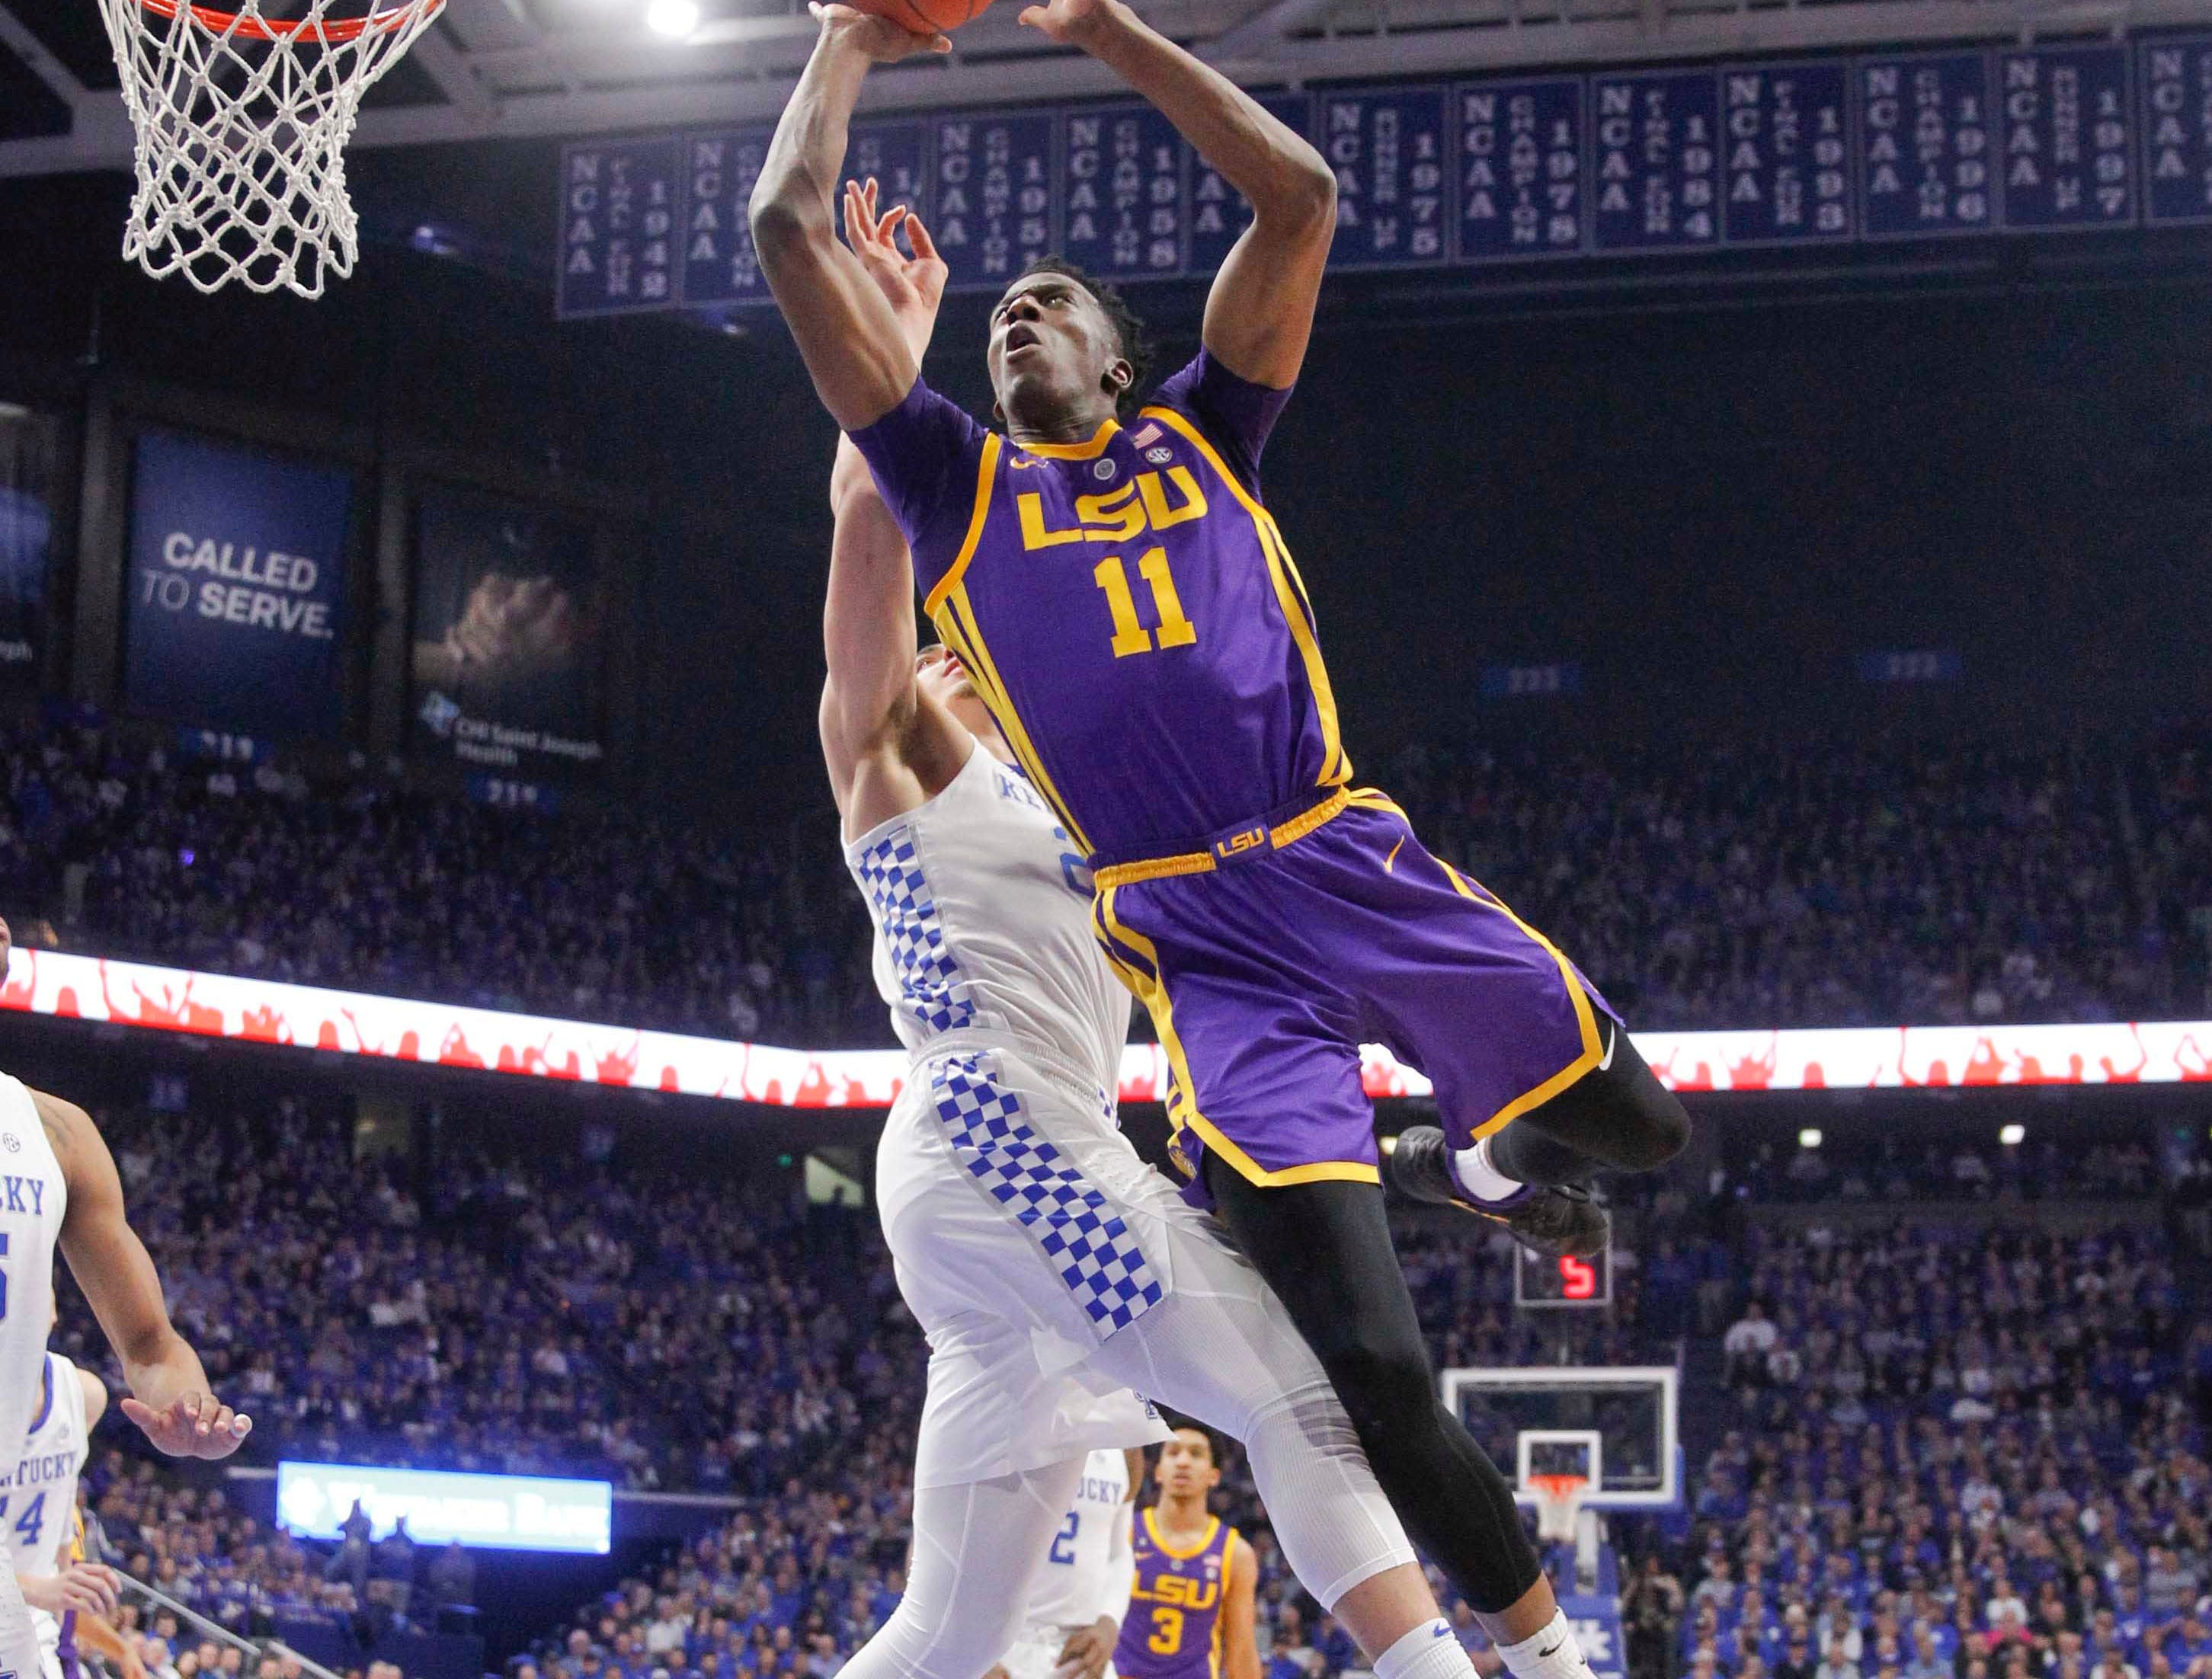 Feb 12, 2019; Lexington, KY, USA; LSU Tigers forward Kavell Bigby-Williams (11) shoots the ball against Kentucky Wildcats forward Reid Travis (22) in the second half at Rupp Arena. Mandatory Credit: Mark Zerof-USA TODAY Sports